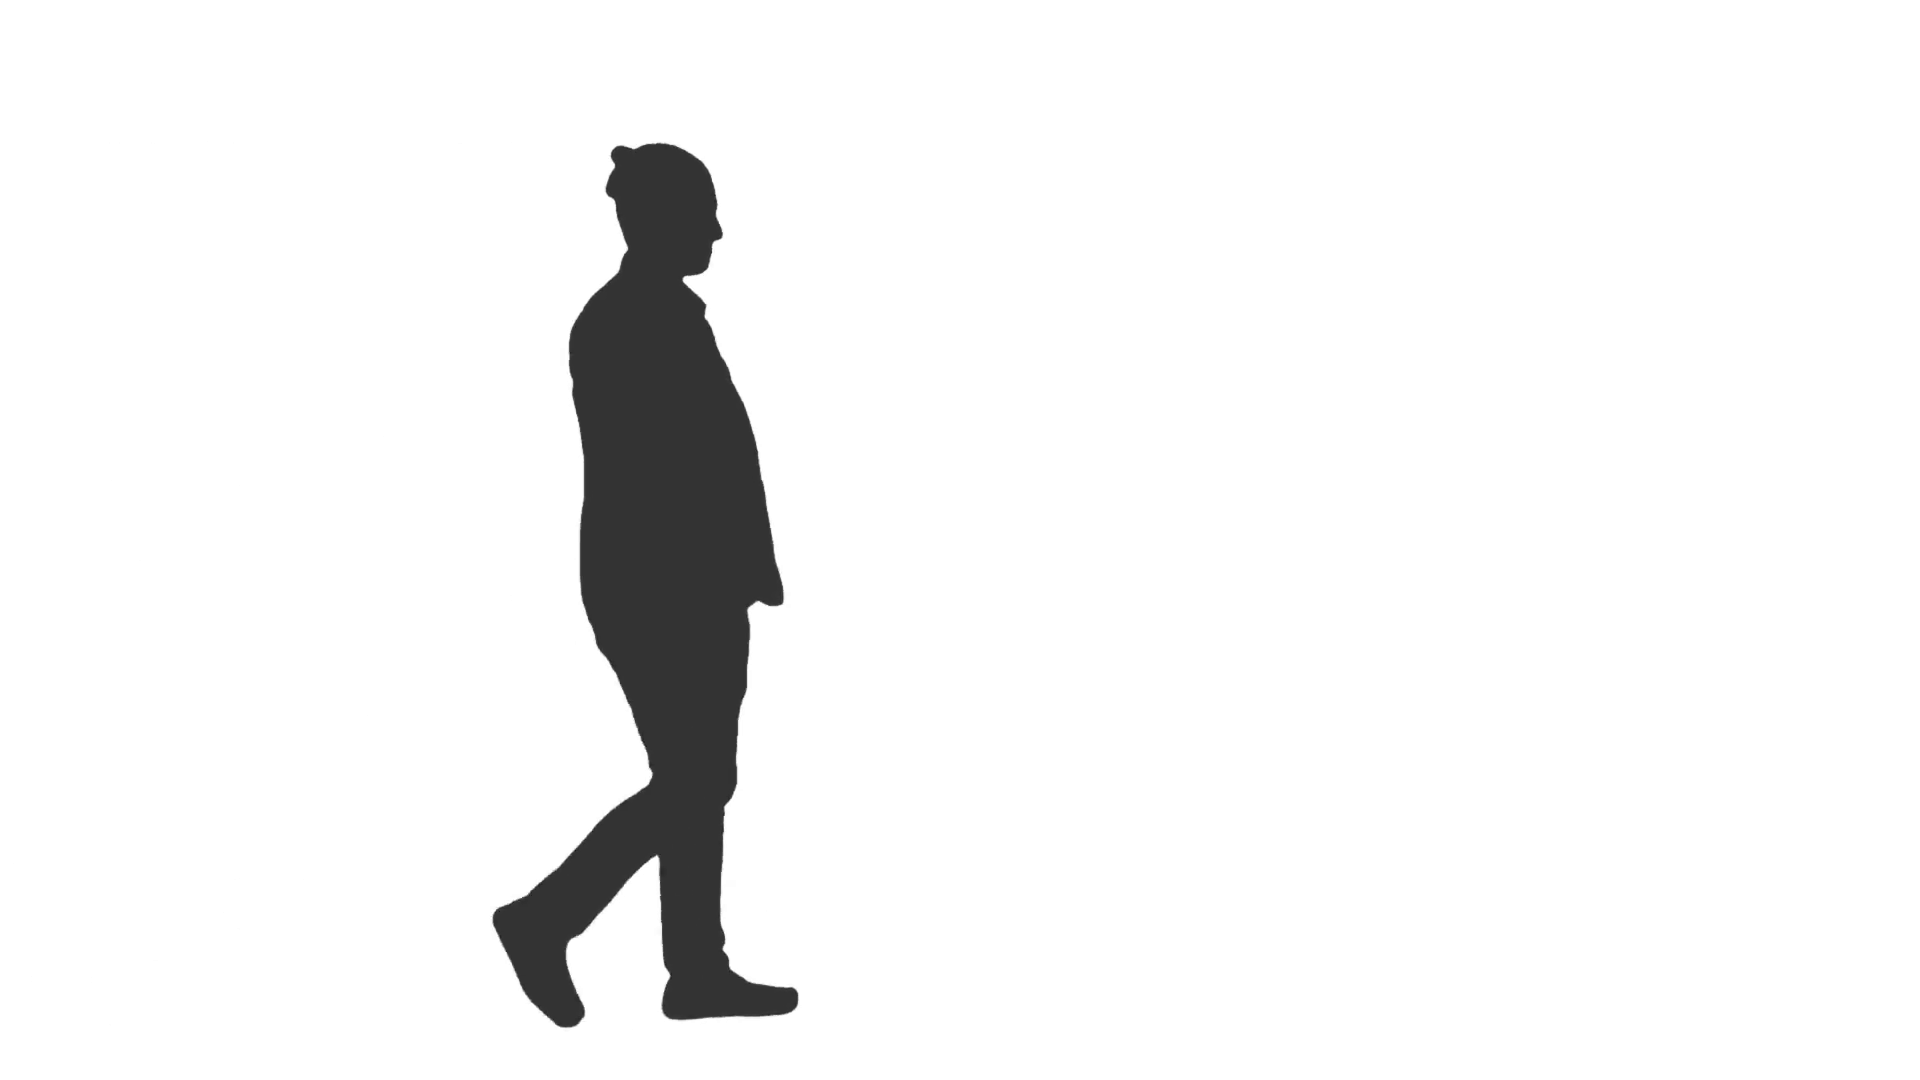 1920x1080 Silhouette Of A Young Man Walking With Hands In Pockets. Side View